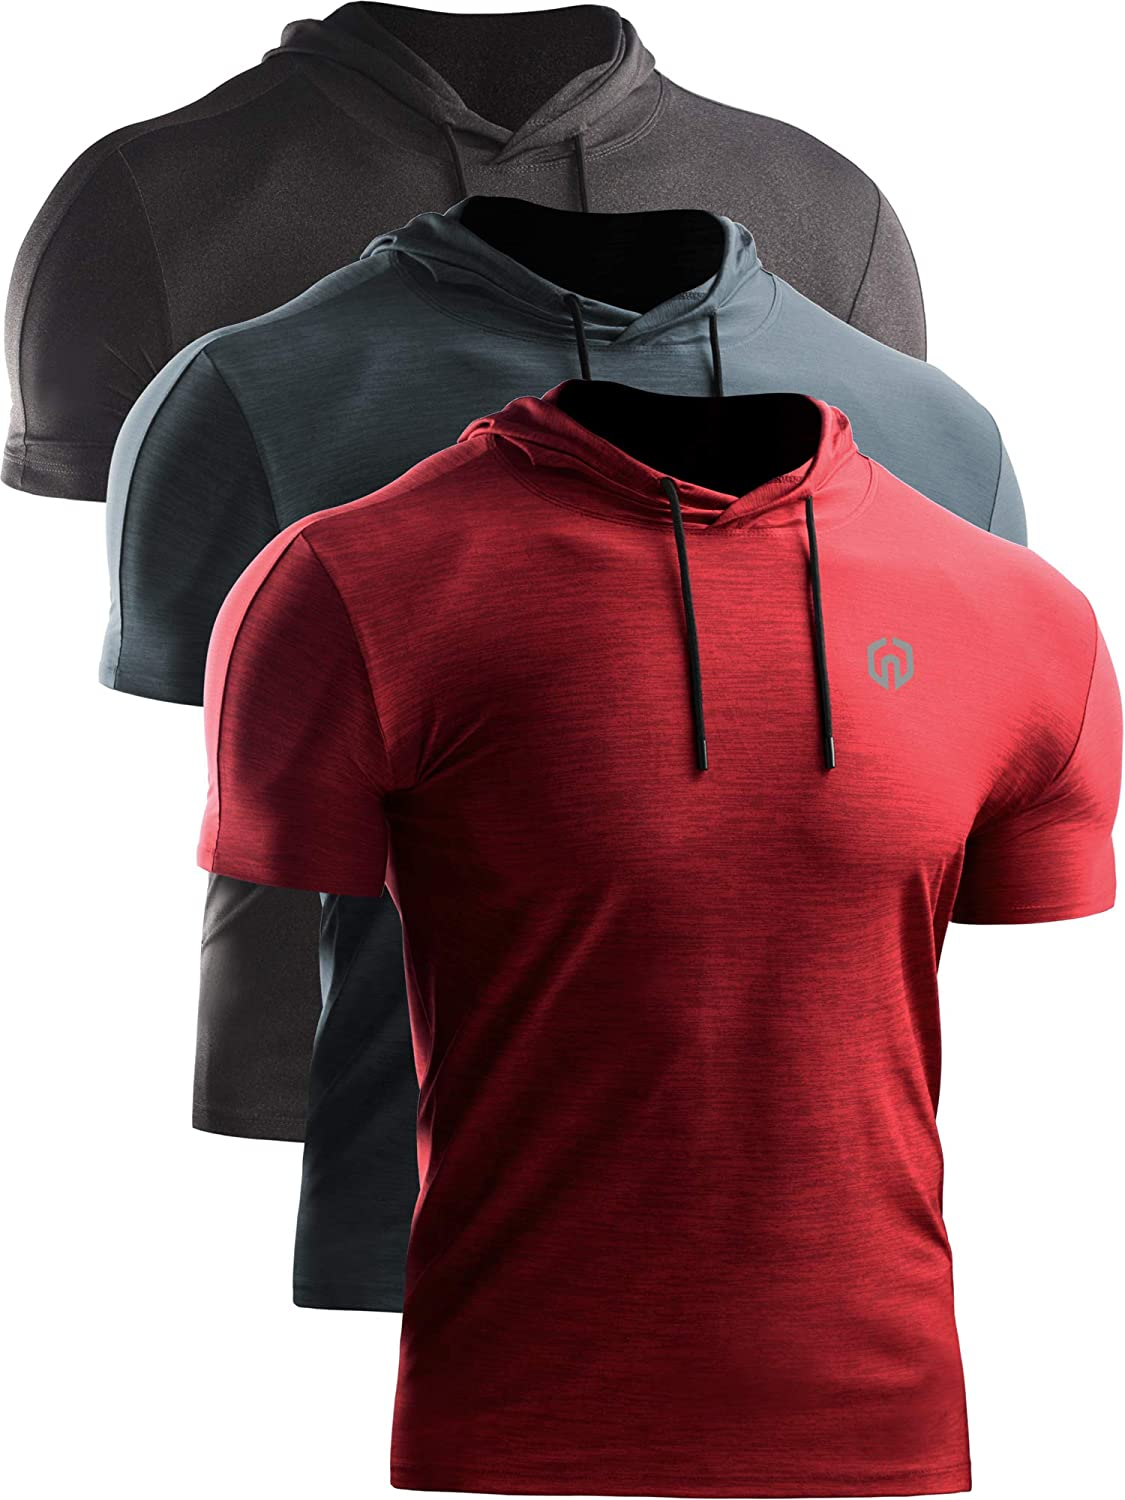 Neleus Men's Dry Fit Performance Limited time cheap sale Shirt Athletic Hoods with Excellent